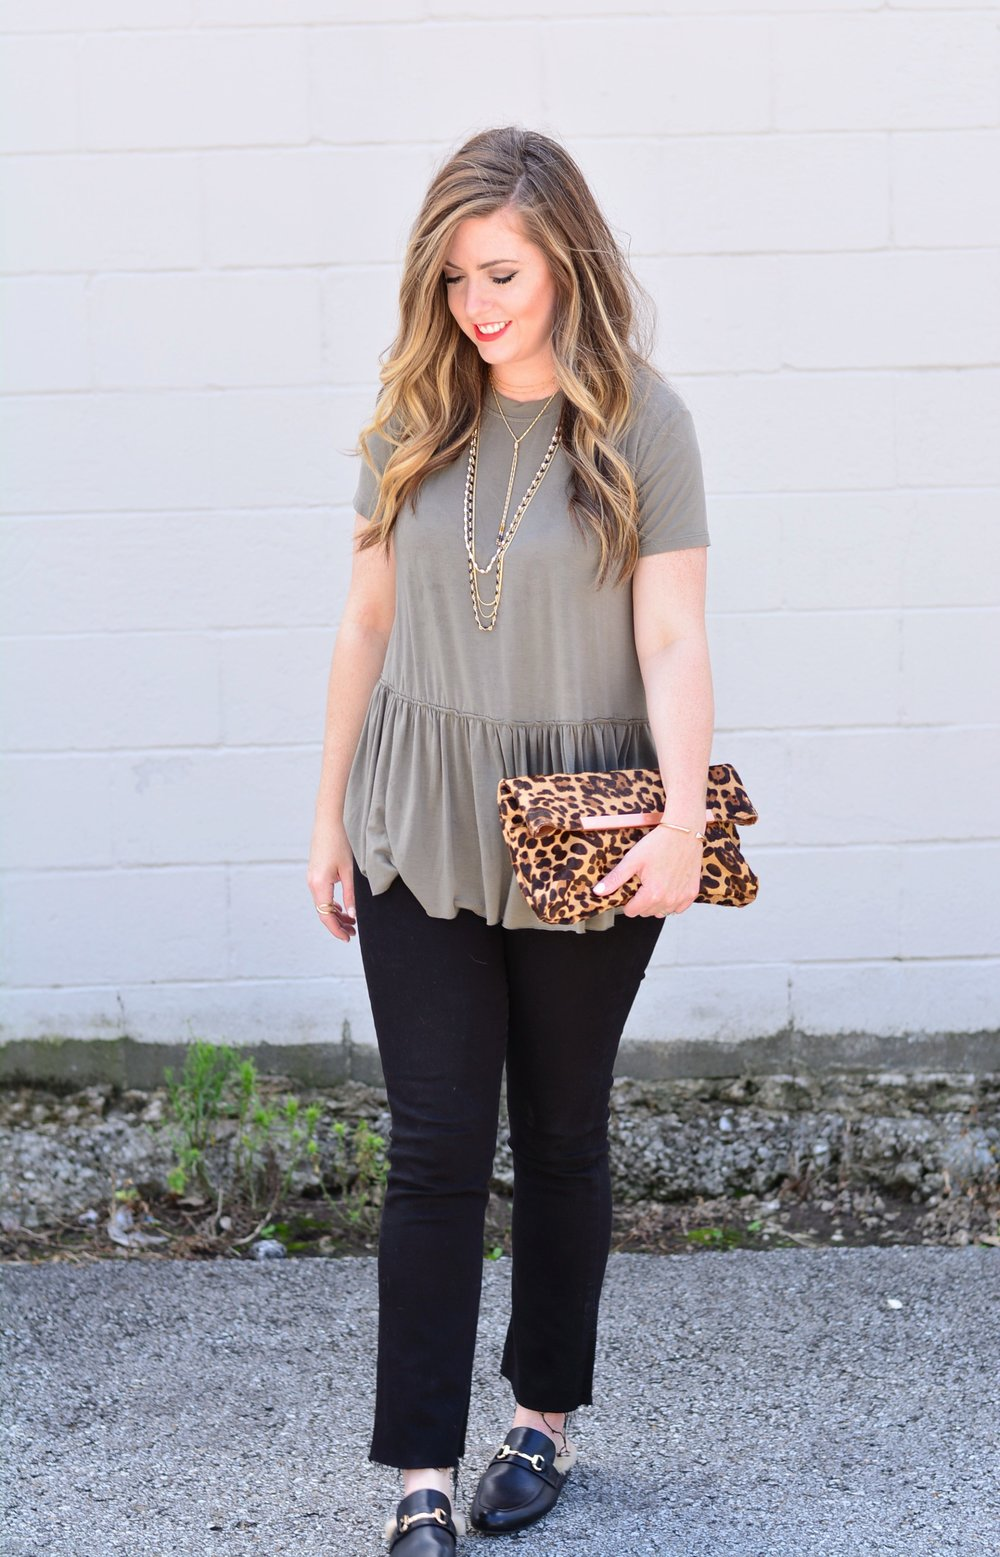 Olive tee and black jeans for fall